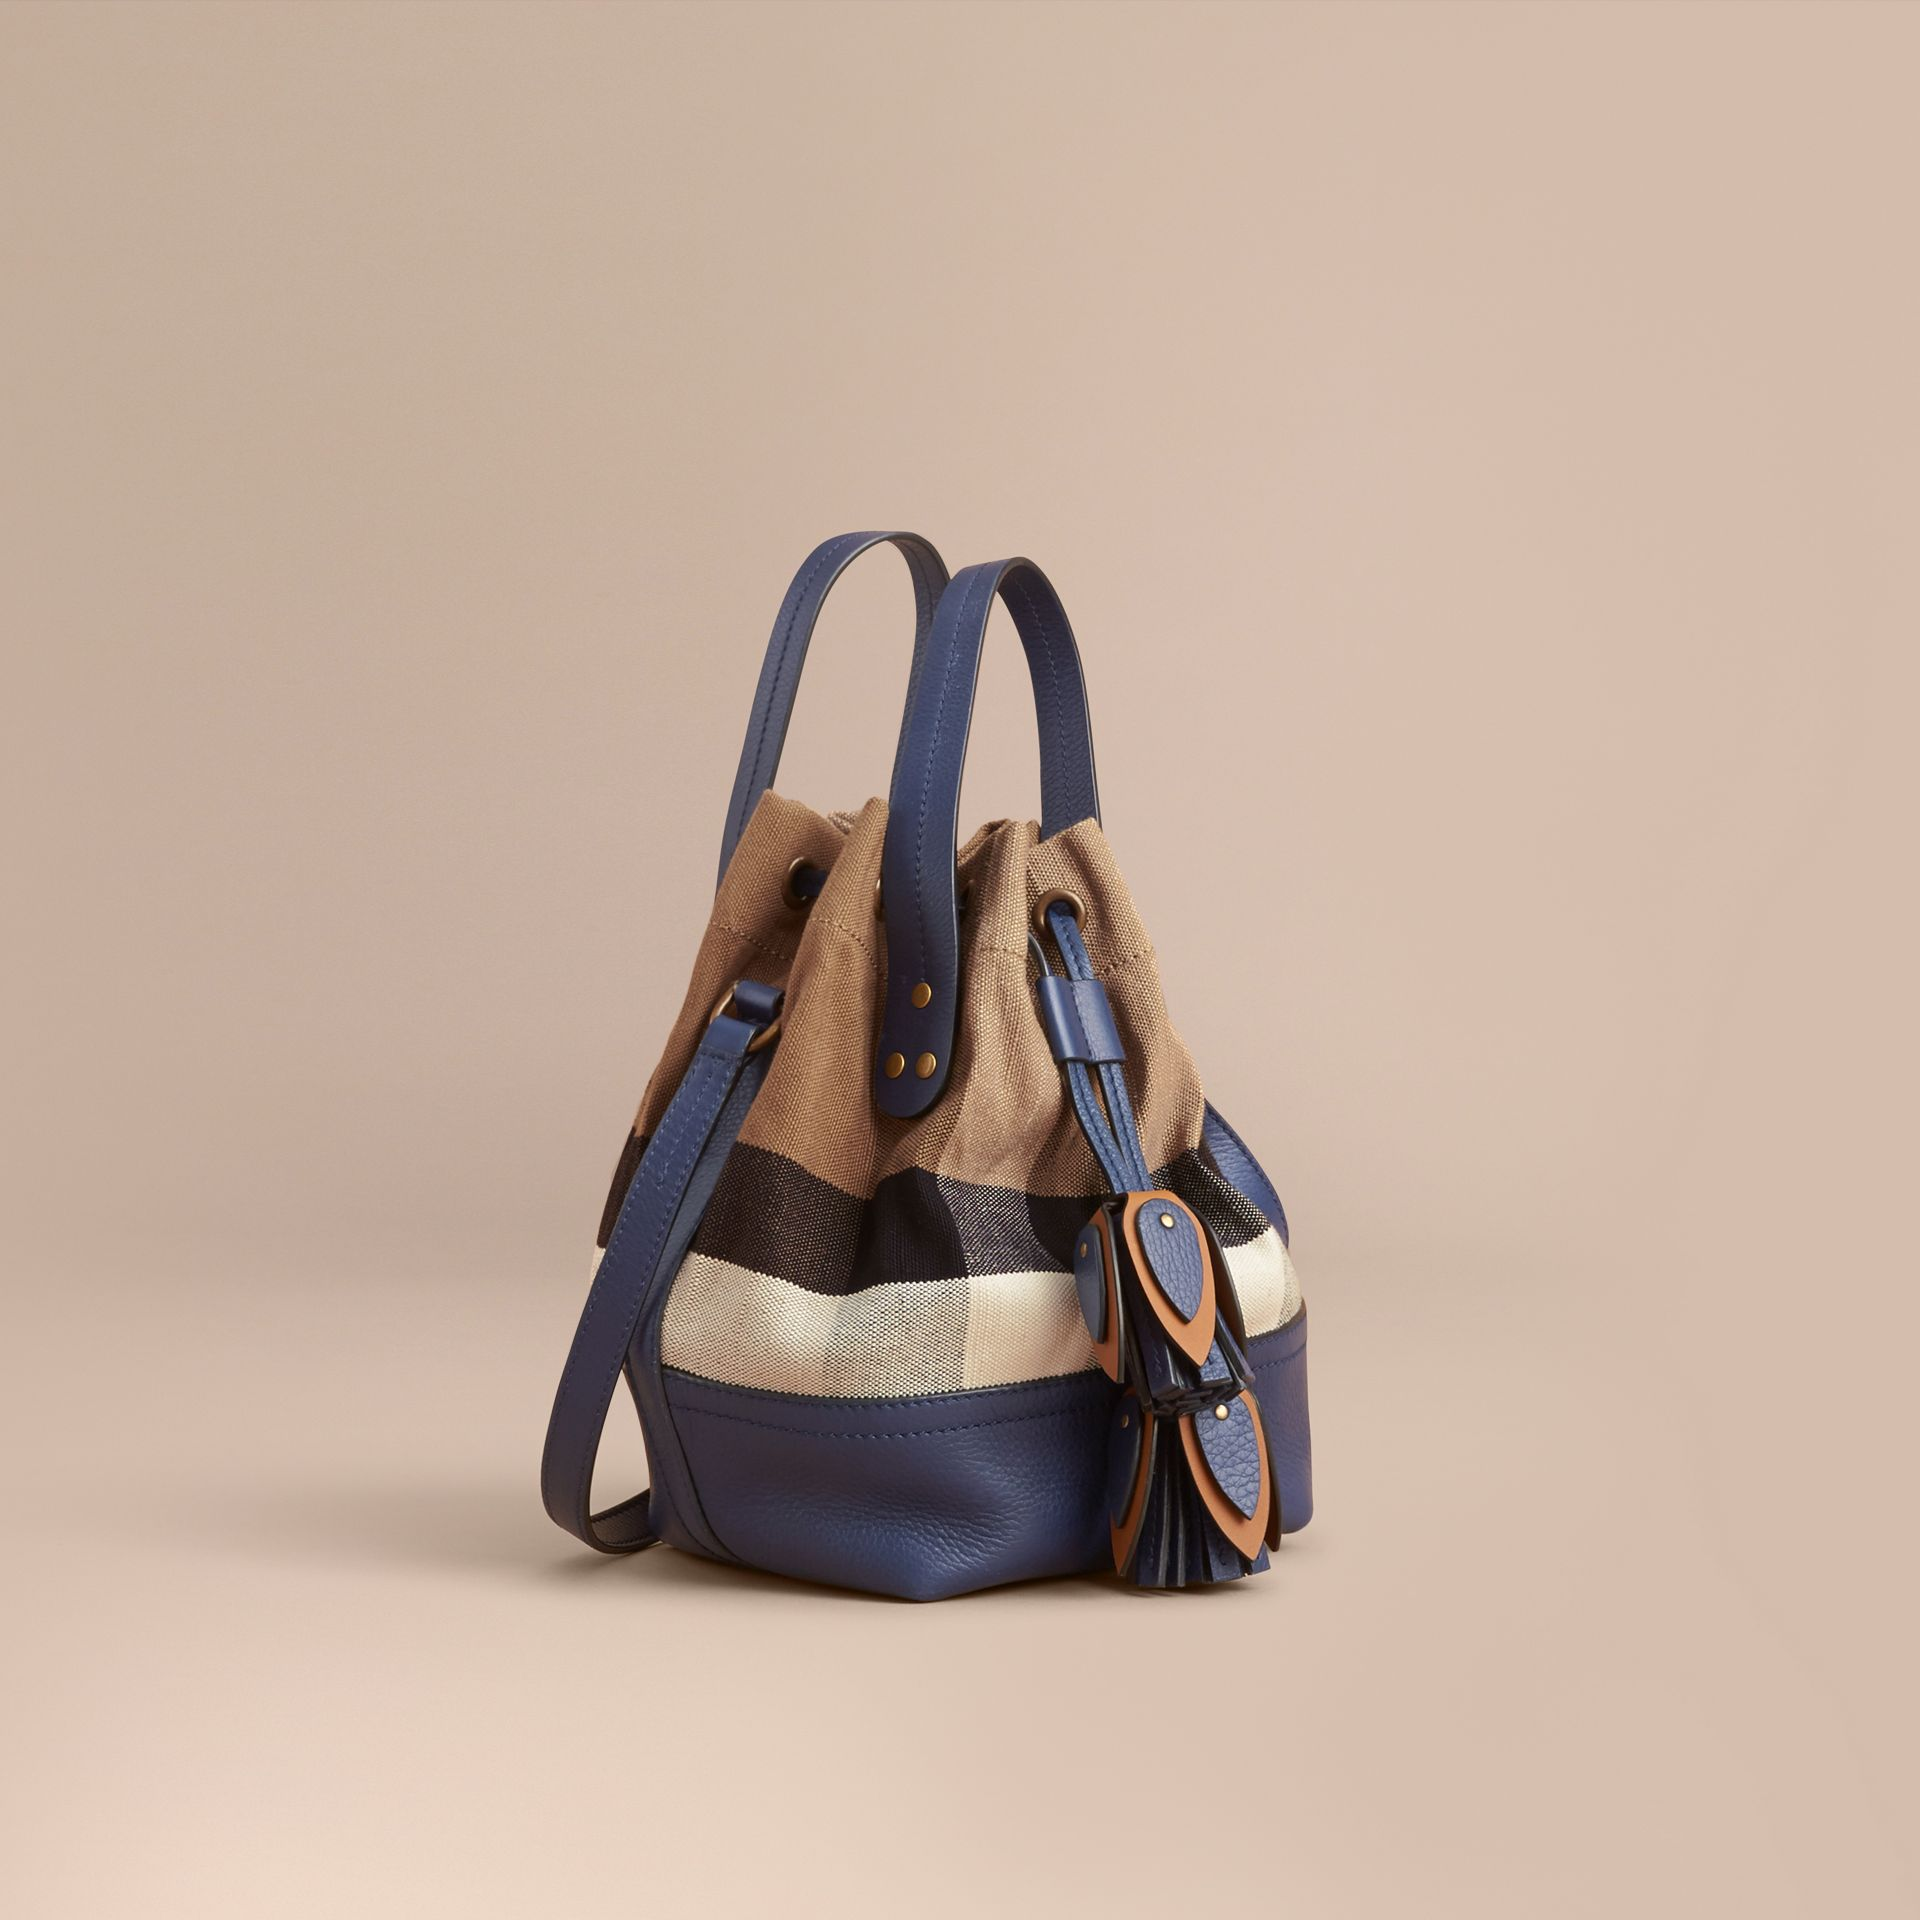 Small Canvas Check and Leather Bucket Bag in Brilliant Navy - Women | Burberry - gallery image 1